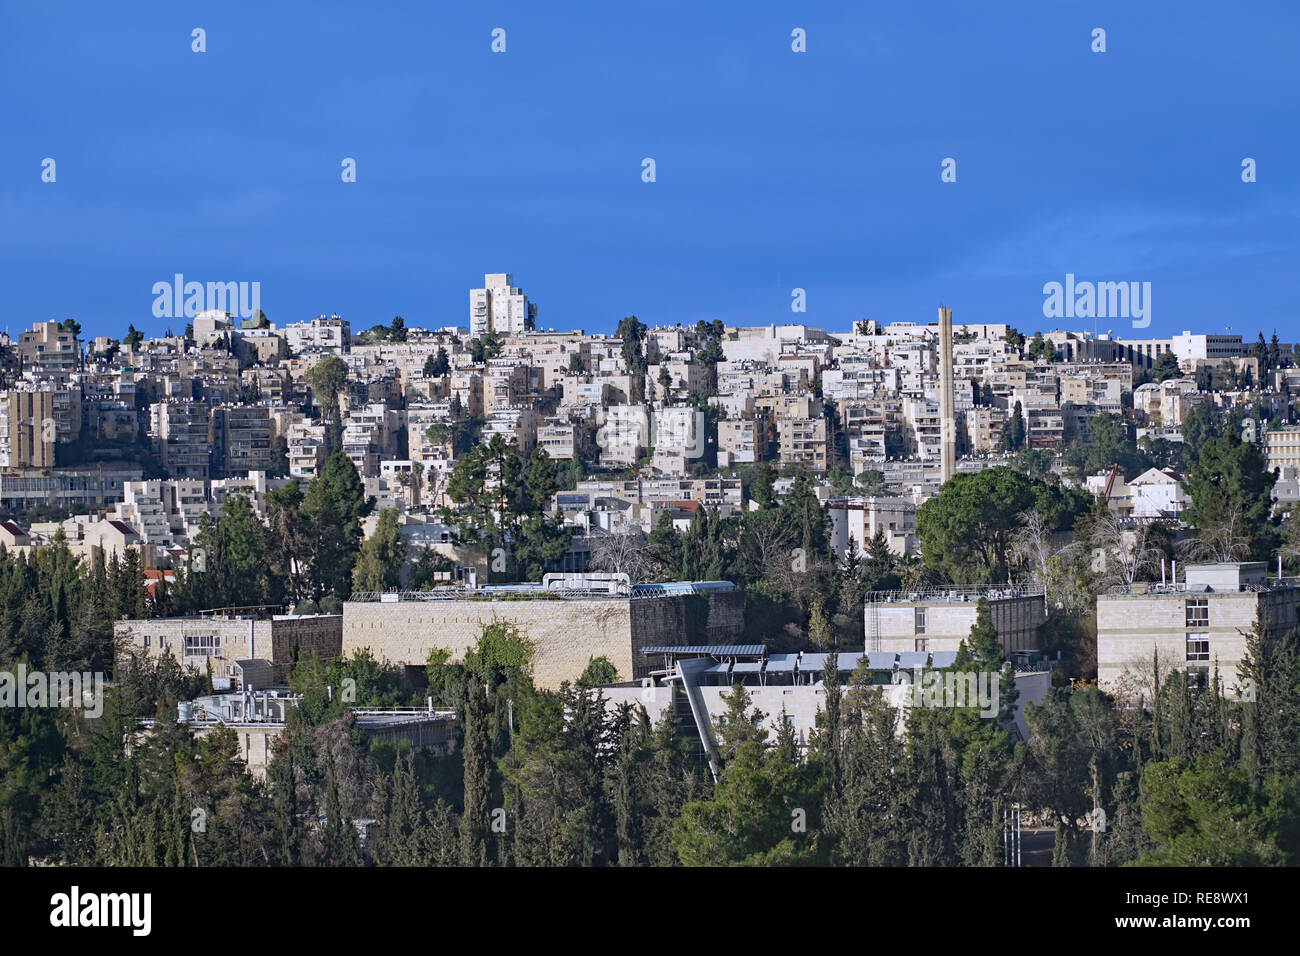 West Jerusalem hillside skyline with modern apartment buildings, with Hebrew University Givat Ram campus in foreground - Stock Image